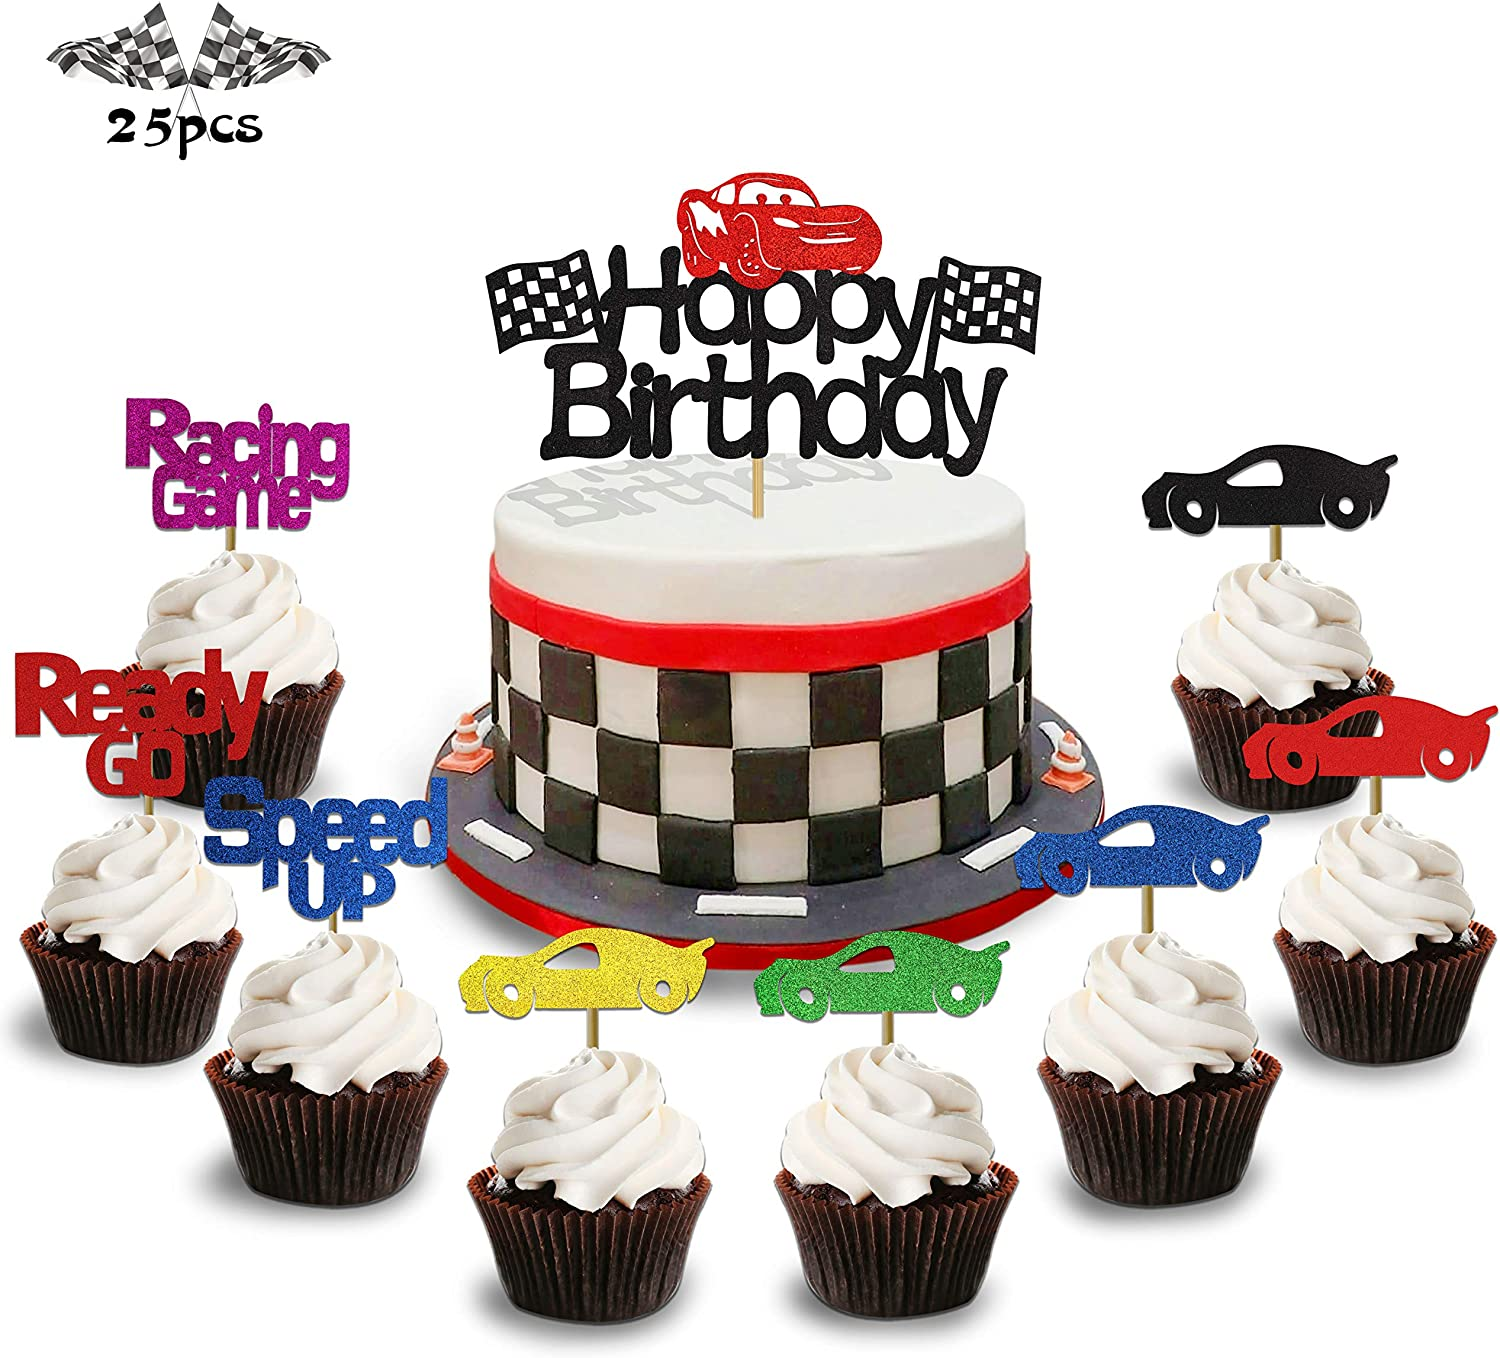 Groovy Amazon Com Kapokku Set Of 25 Racing Car Glitter Cake Cupcake Funny Birthday Cards Online Elaedamsfinfo